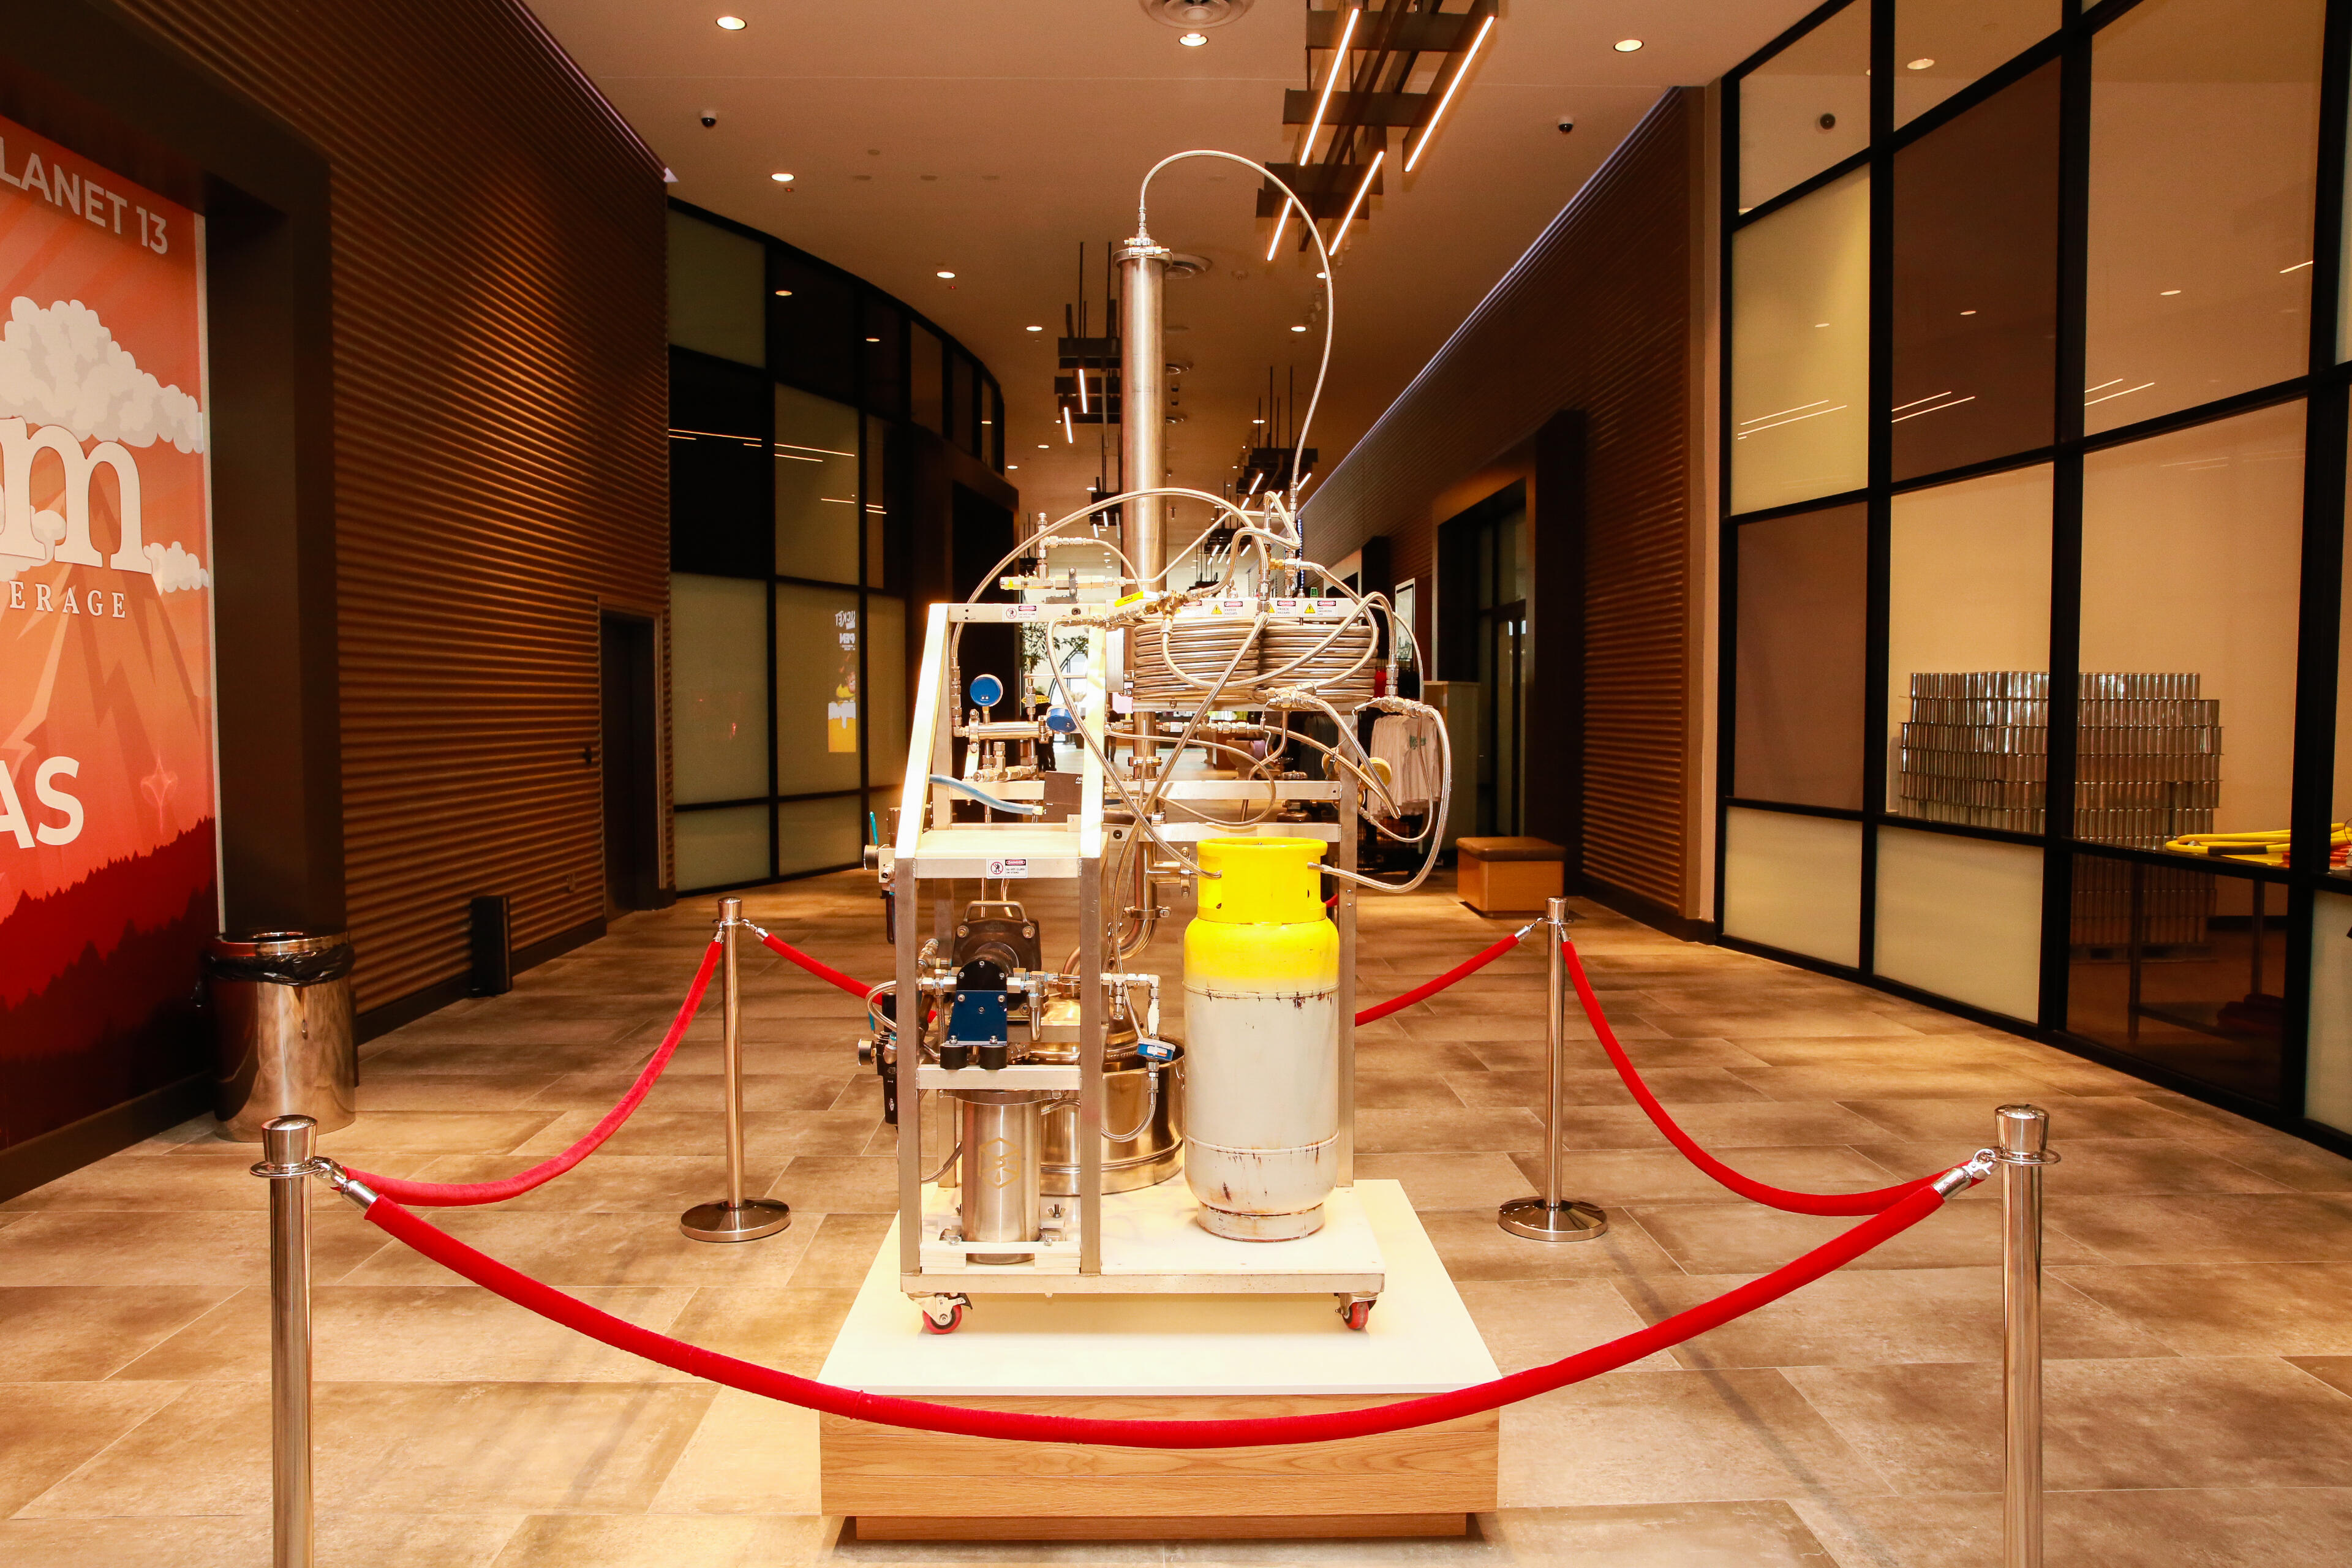 """This """"Turpinator"""" is on display further down the hallway. It's the first equipment used by Planet 13 to pull oils out of cannabis for the dispensary's vape oils and edible products."""